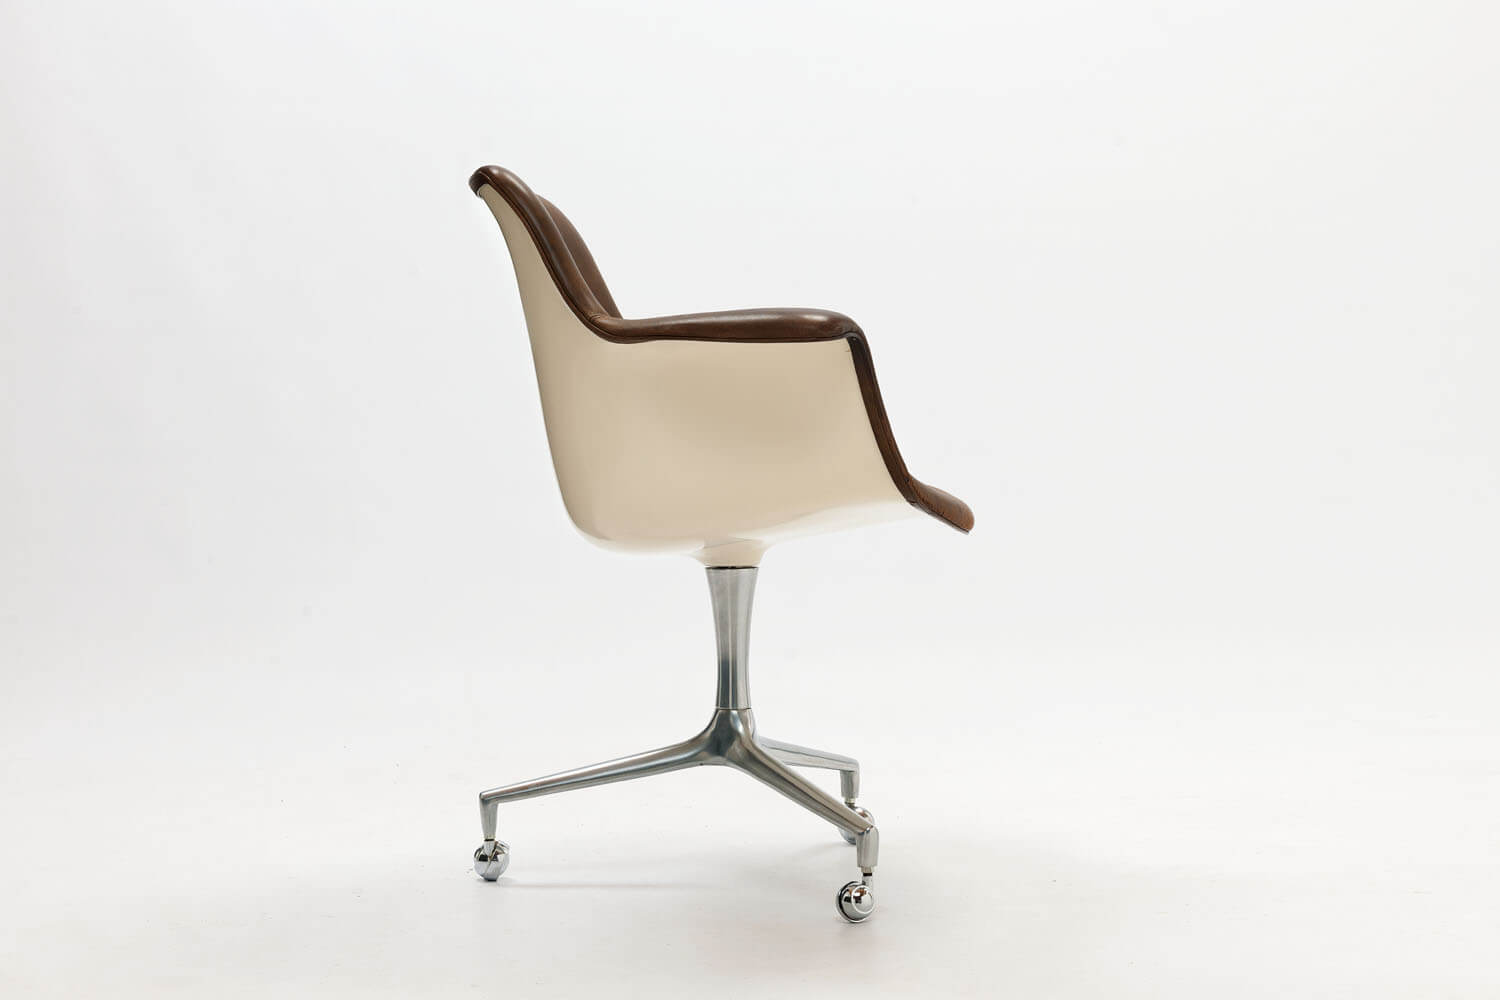 Vintage FK810 chair